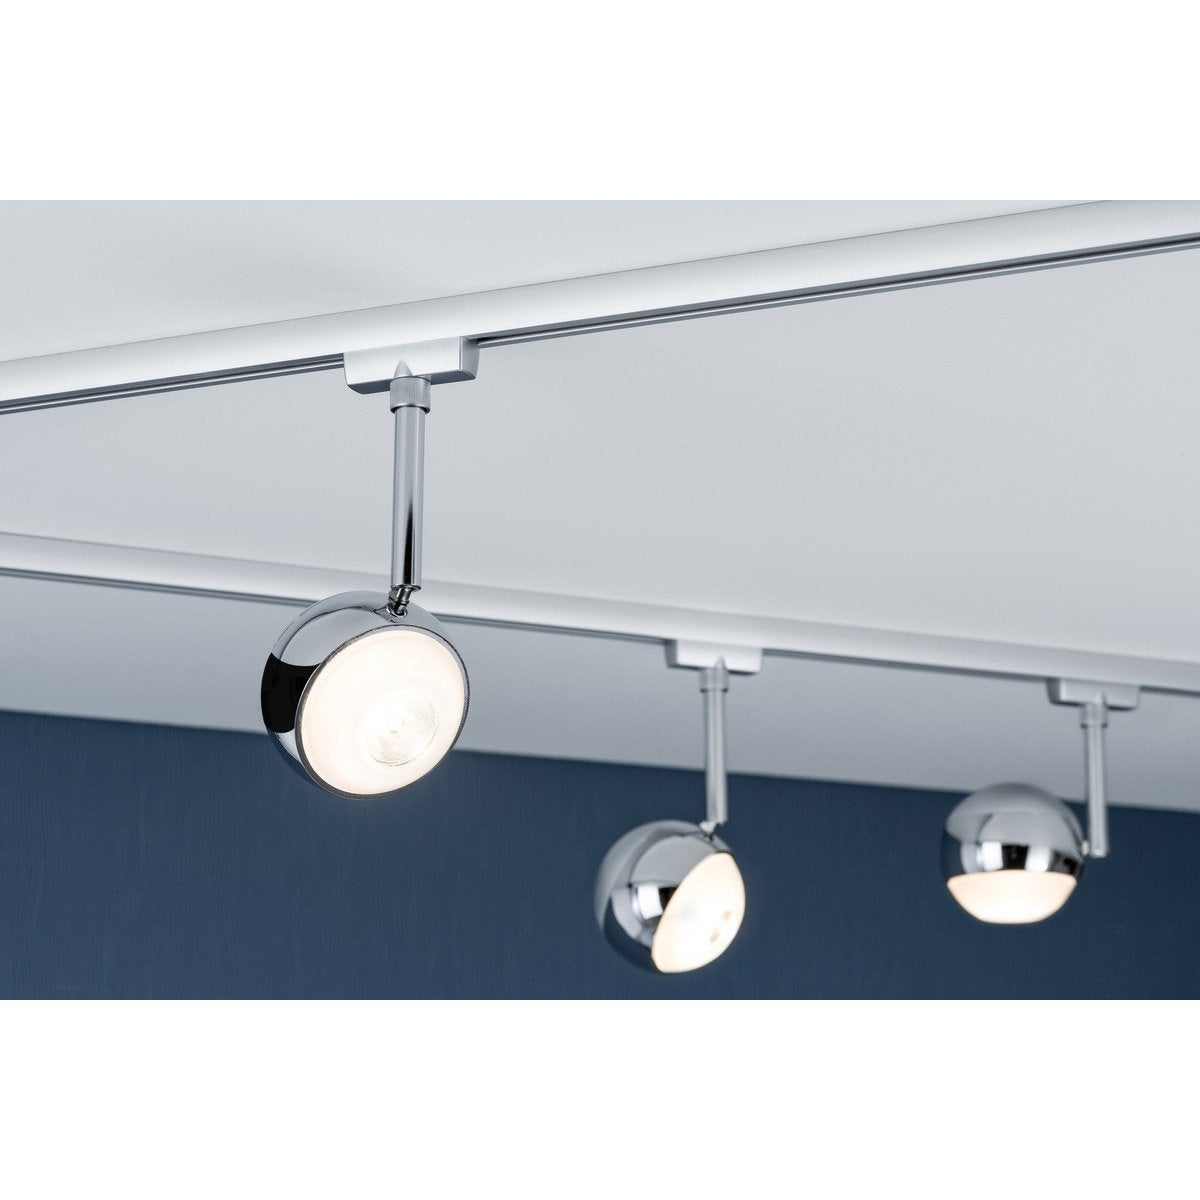 spots et suspensions pour rail paulmann capsule led 1 x 4 5 w leroy merlin. Black Bedroom Furniture Sets. Home Design Ideas